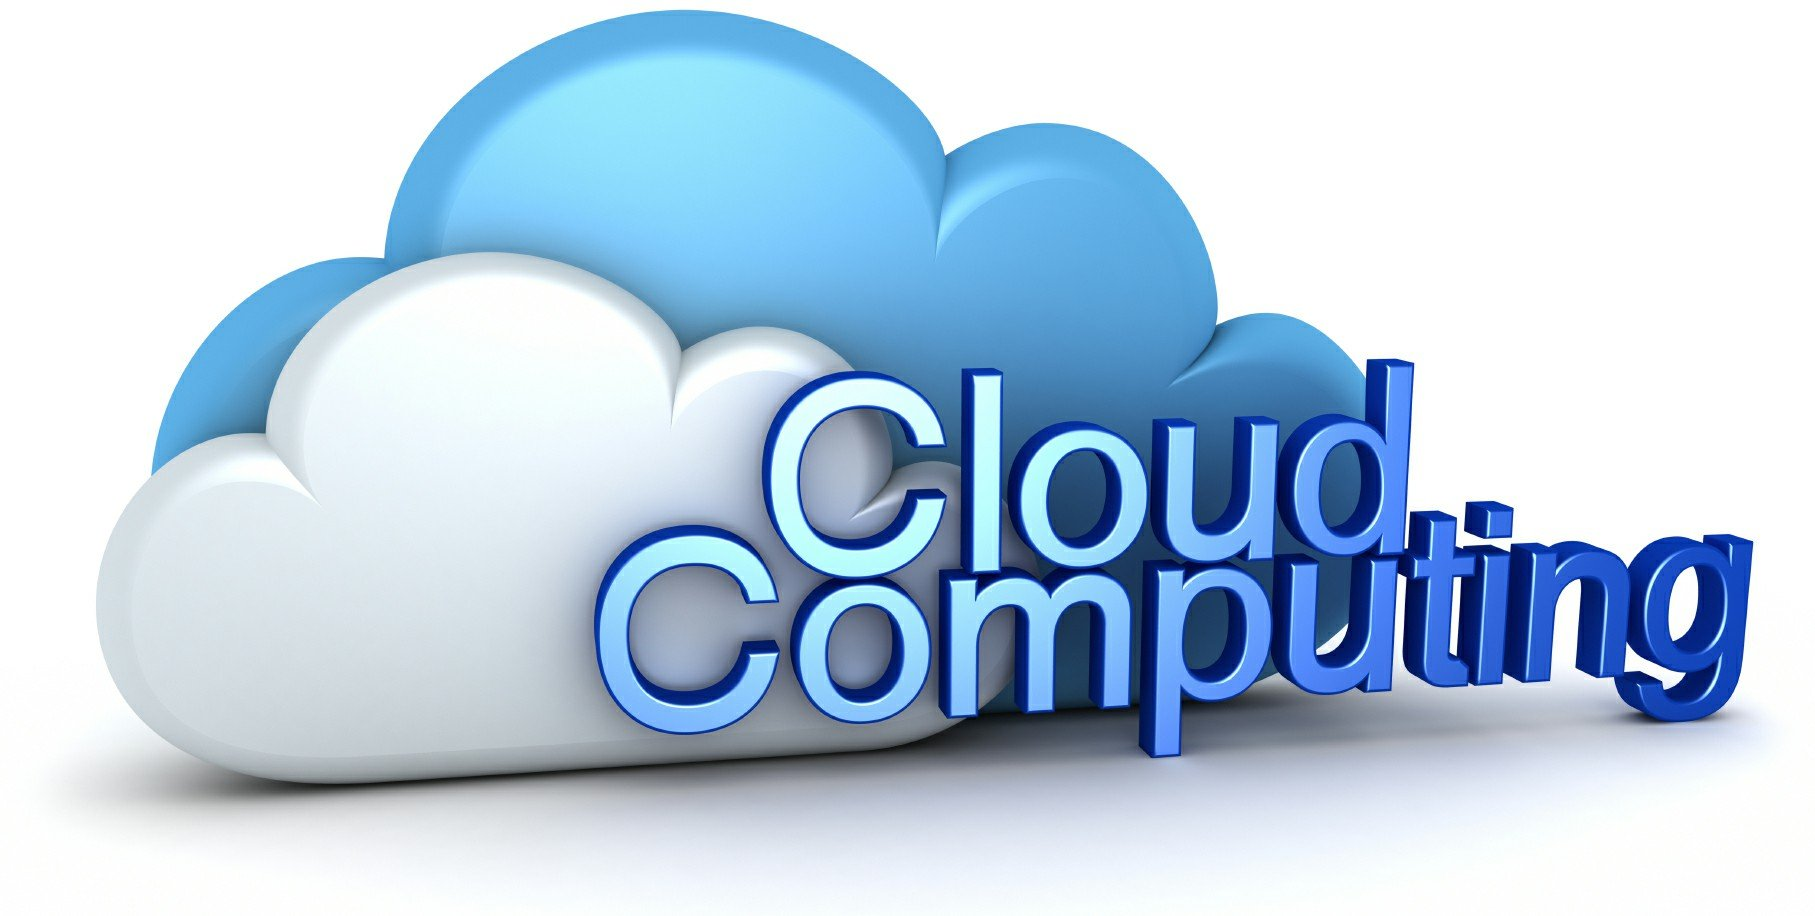 Cloud Computing Graphic - Cloud Computing Services from Global IT Services